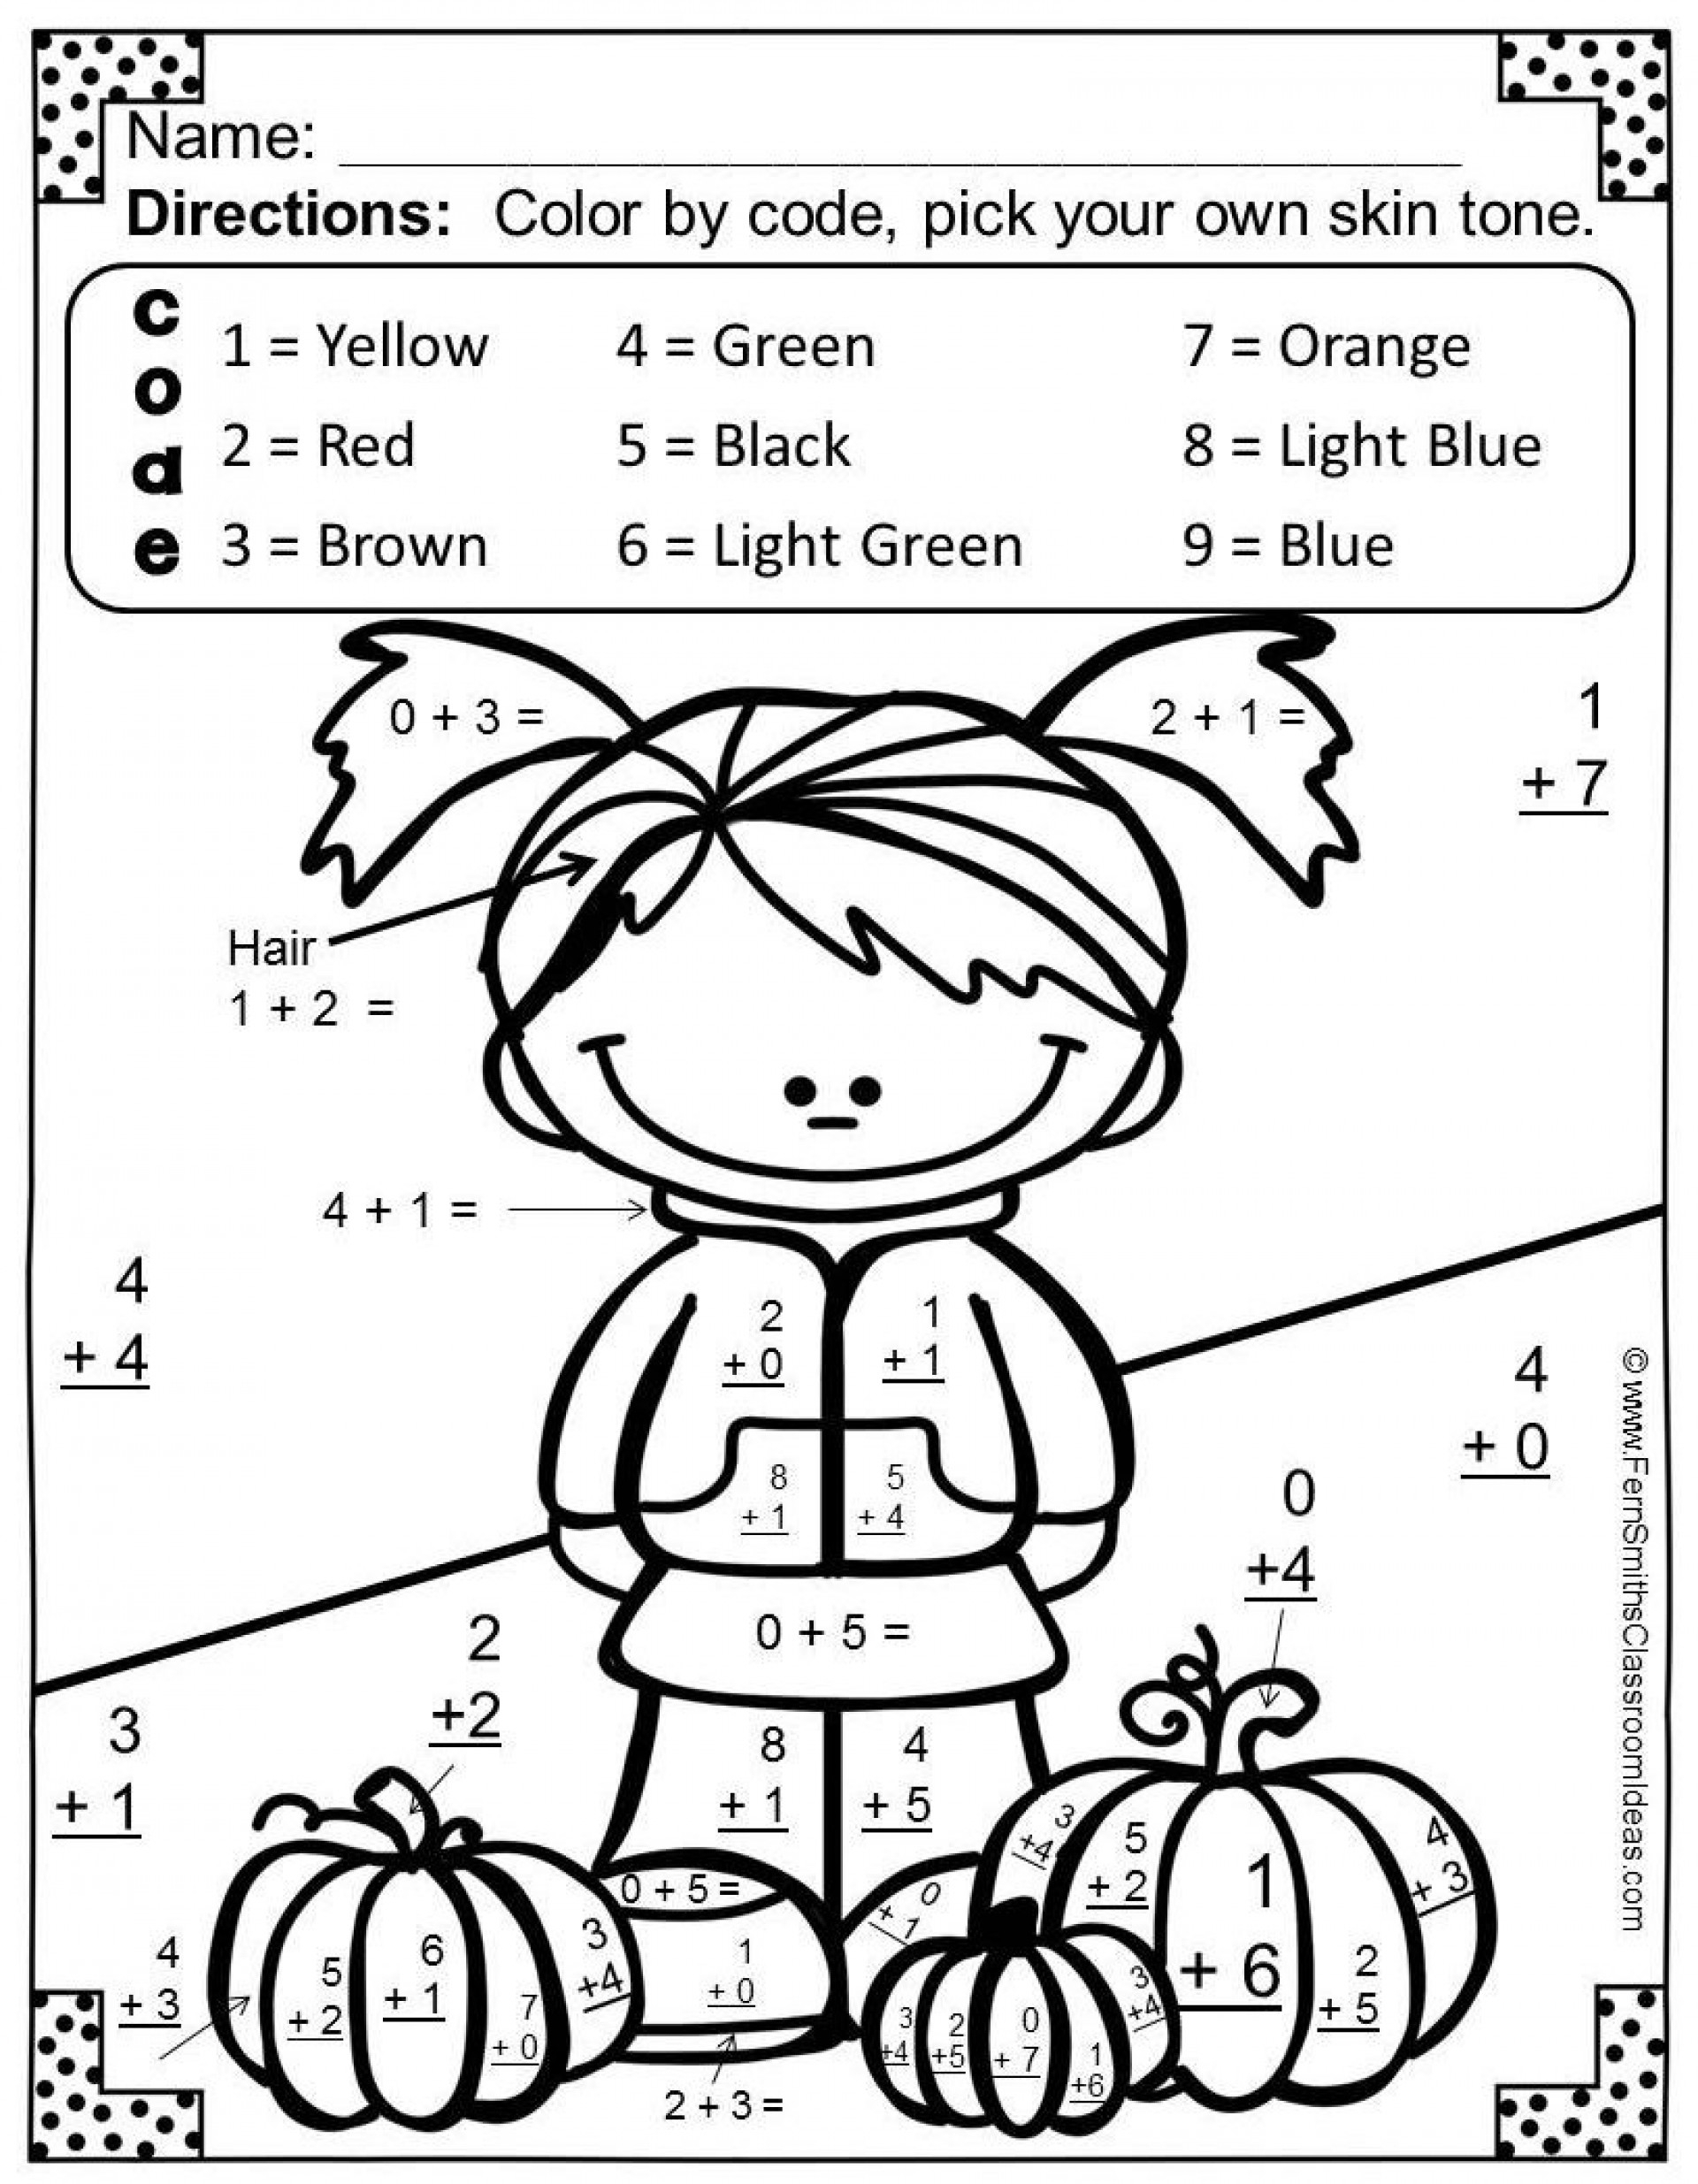 coloring activity for grade 1 math addition coloring worksheets for first grade coloring activity 1 for grade